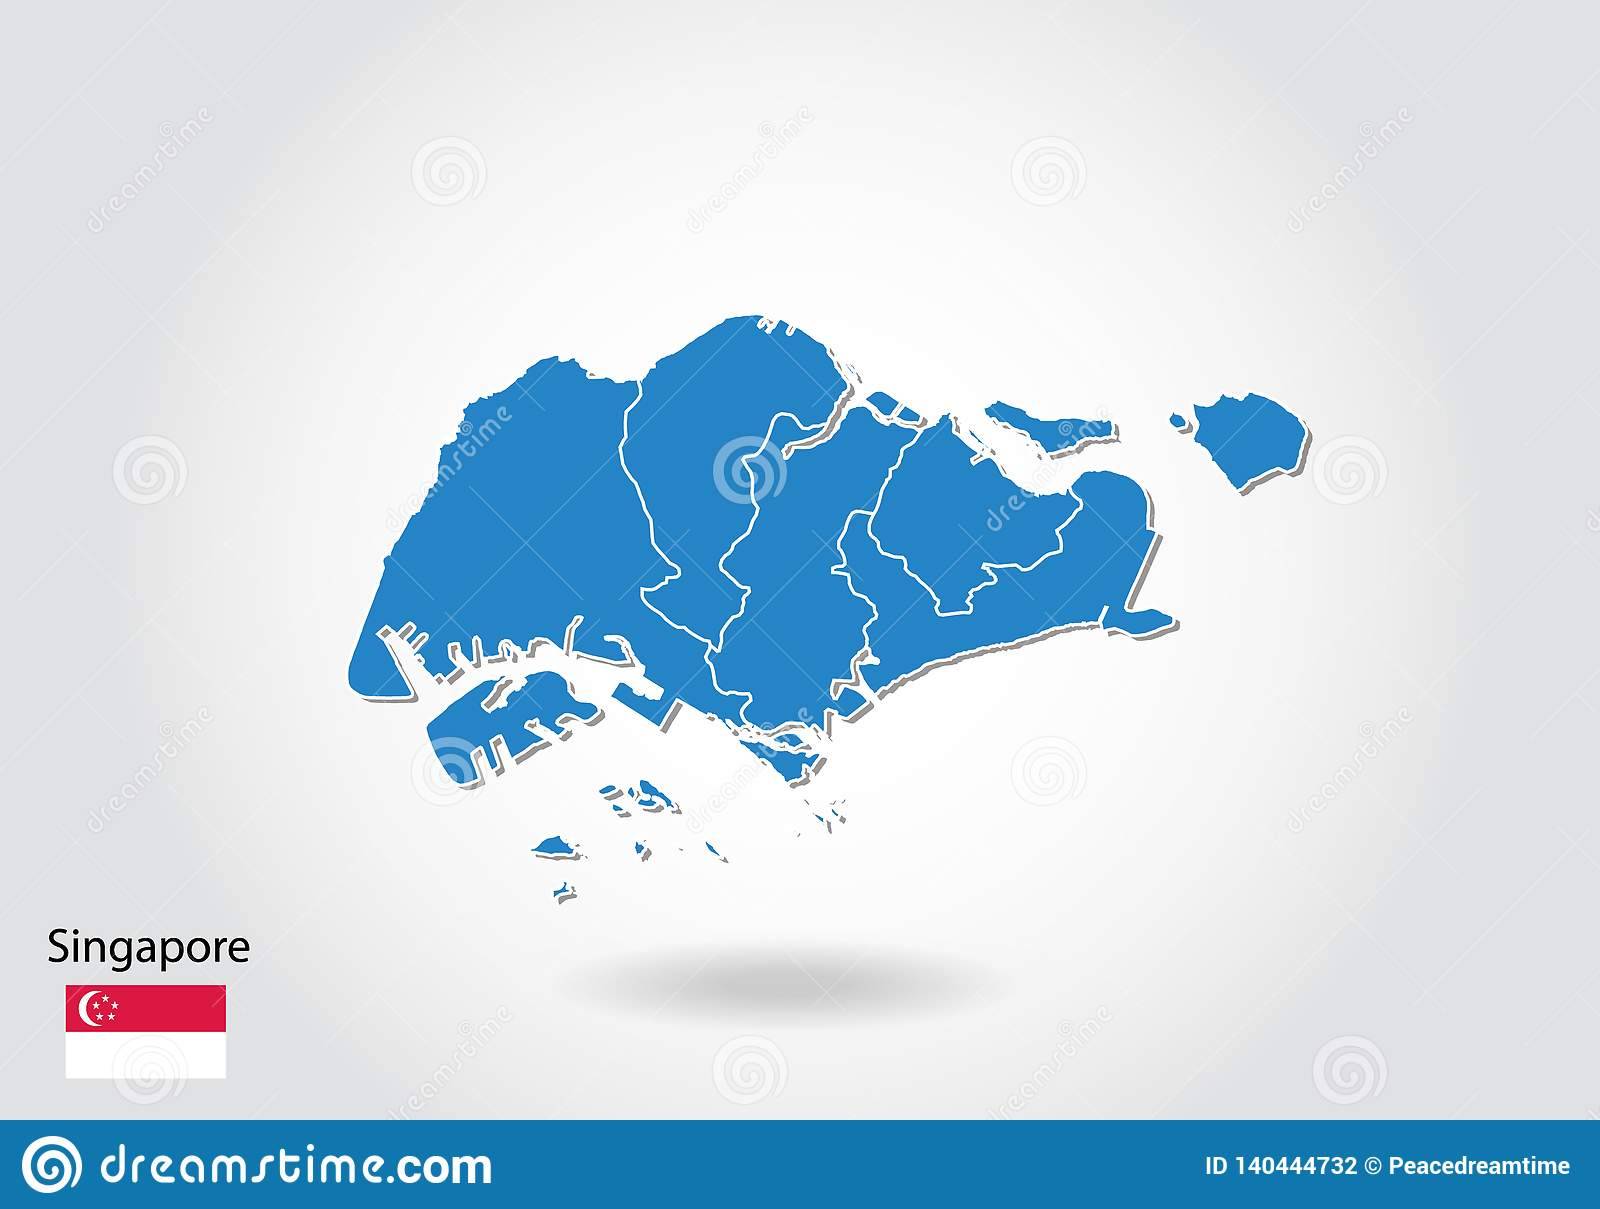 Singapore Map Design With 3D Style. Blue Singapore Map And National ...